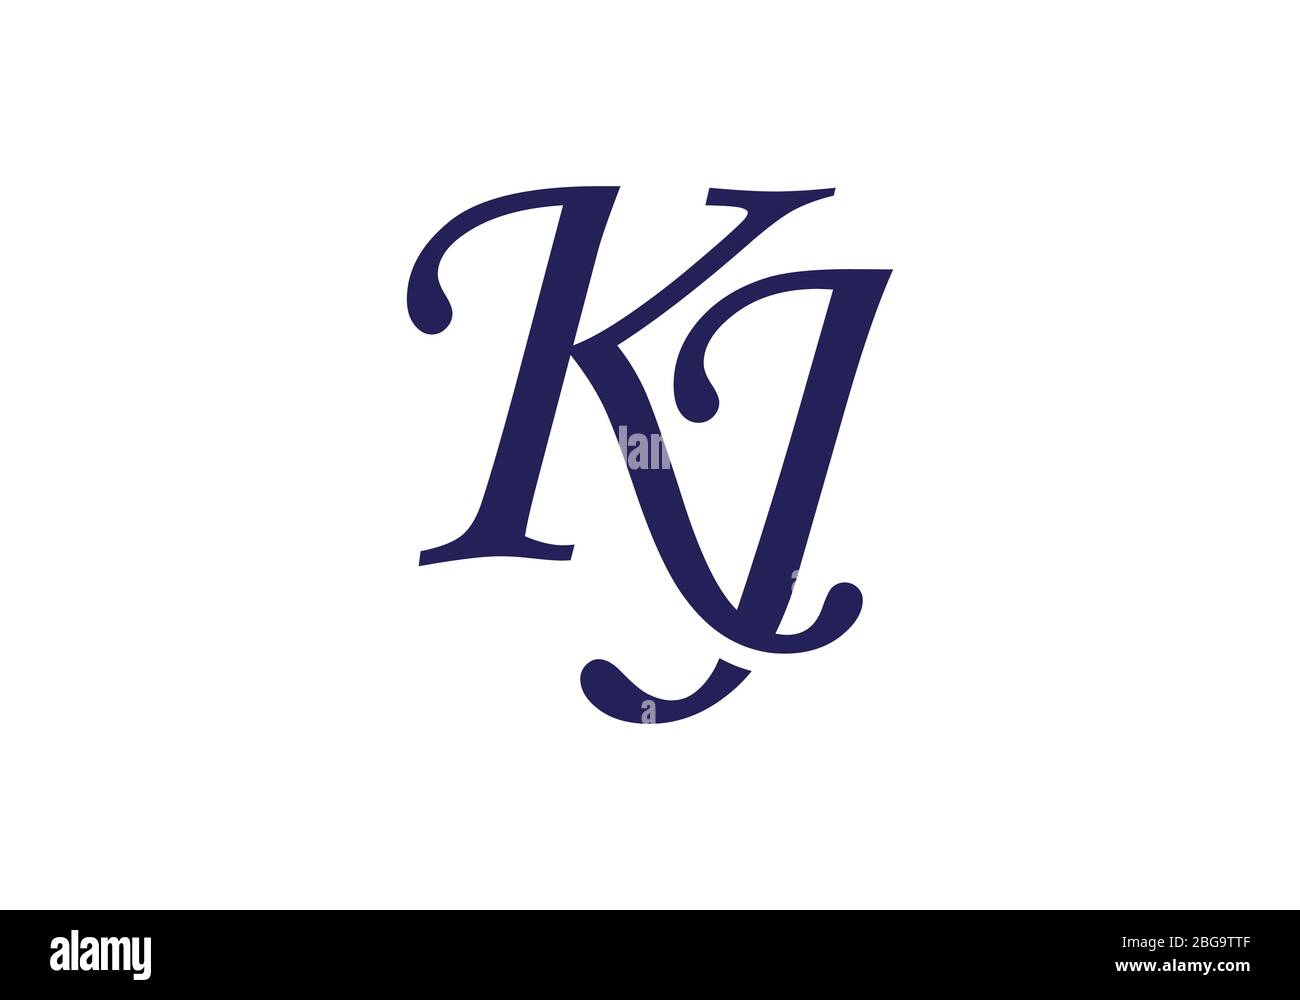 Initial Monogram Letter K J Logo Design Vector Template Kj Letter Logo Design Stock Vector Image Art Alamy